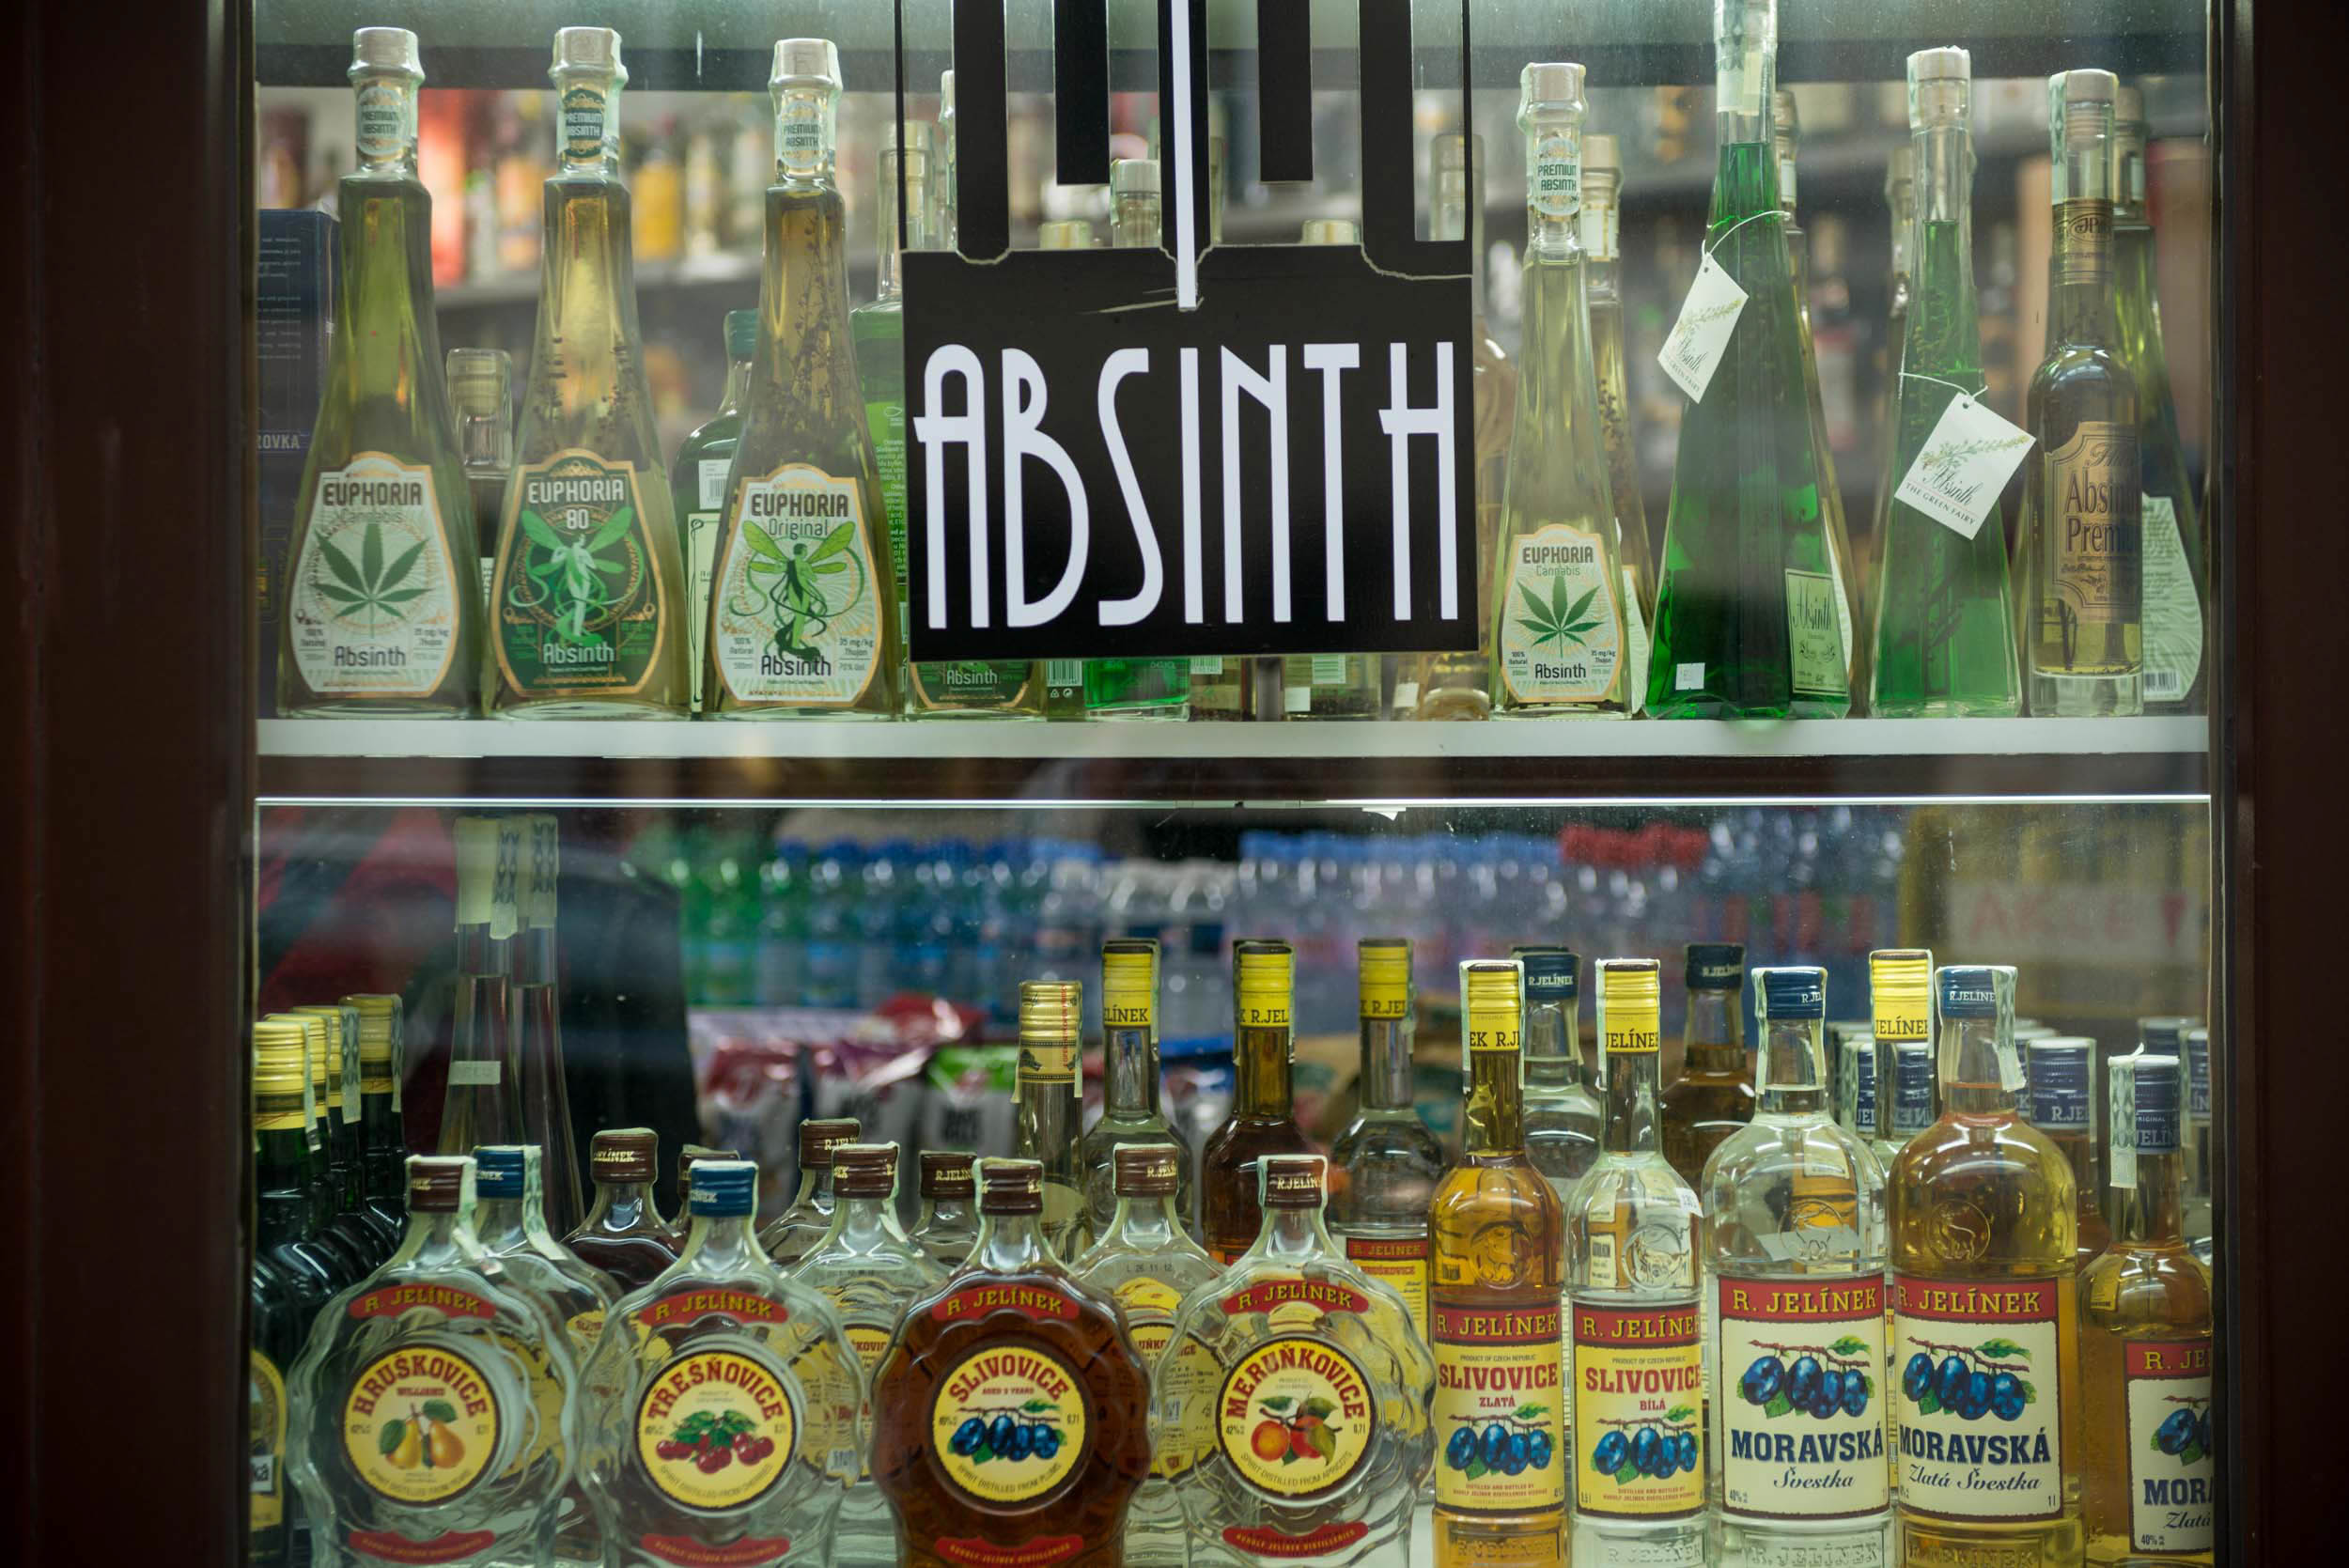 shop-absinth-spirit-liquor-prague-czech-republic